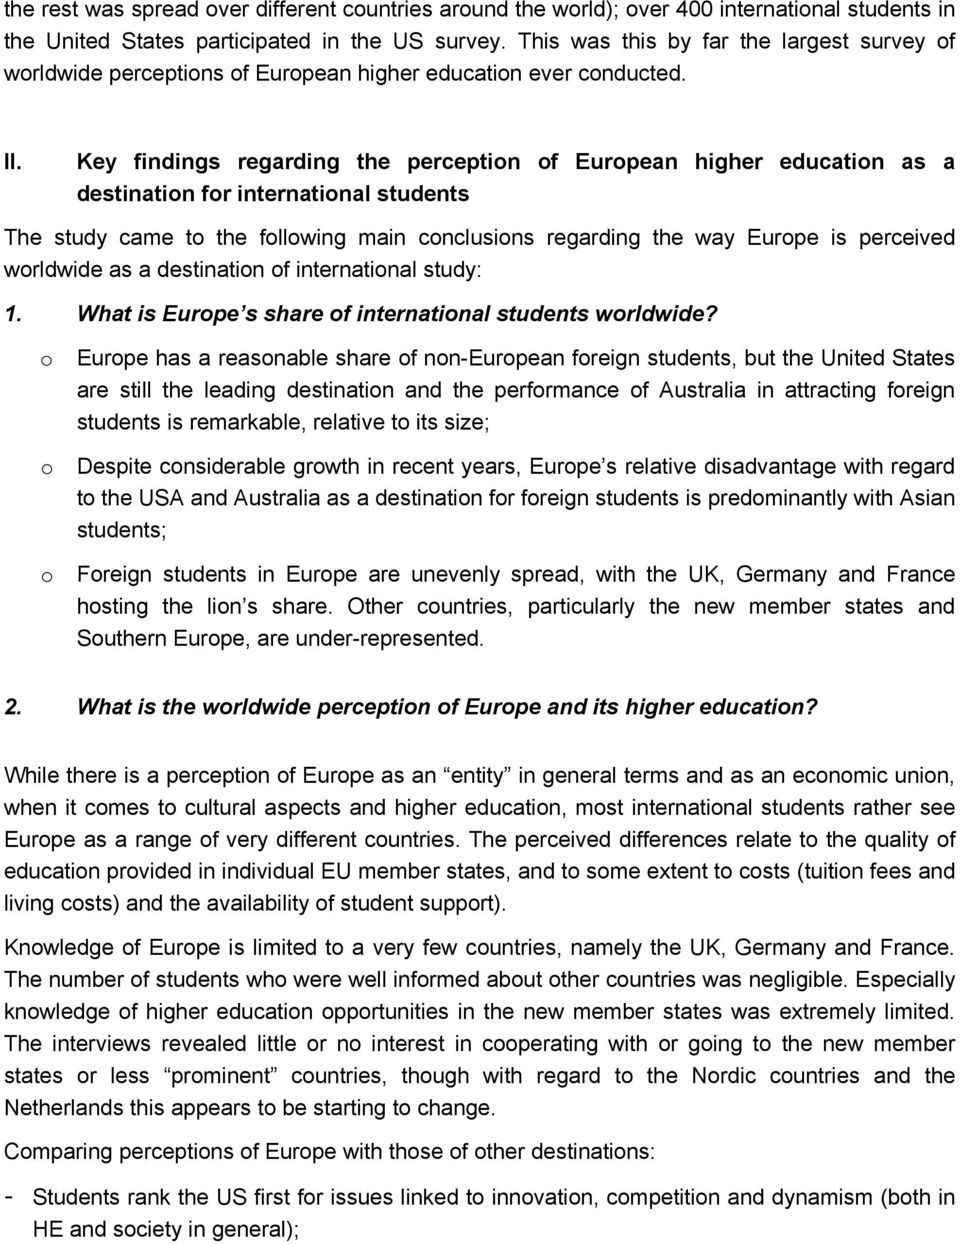 Key findings regarding the perceptin f Eurpean higher educatin as a destinatin fr internatinal students The study came t the fllwing main cnclusins regarding the way Eurpe is perceived wrldwide as a